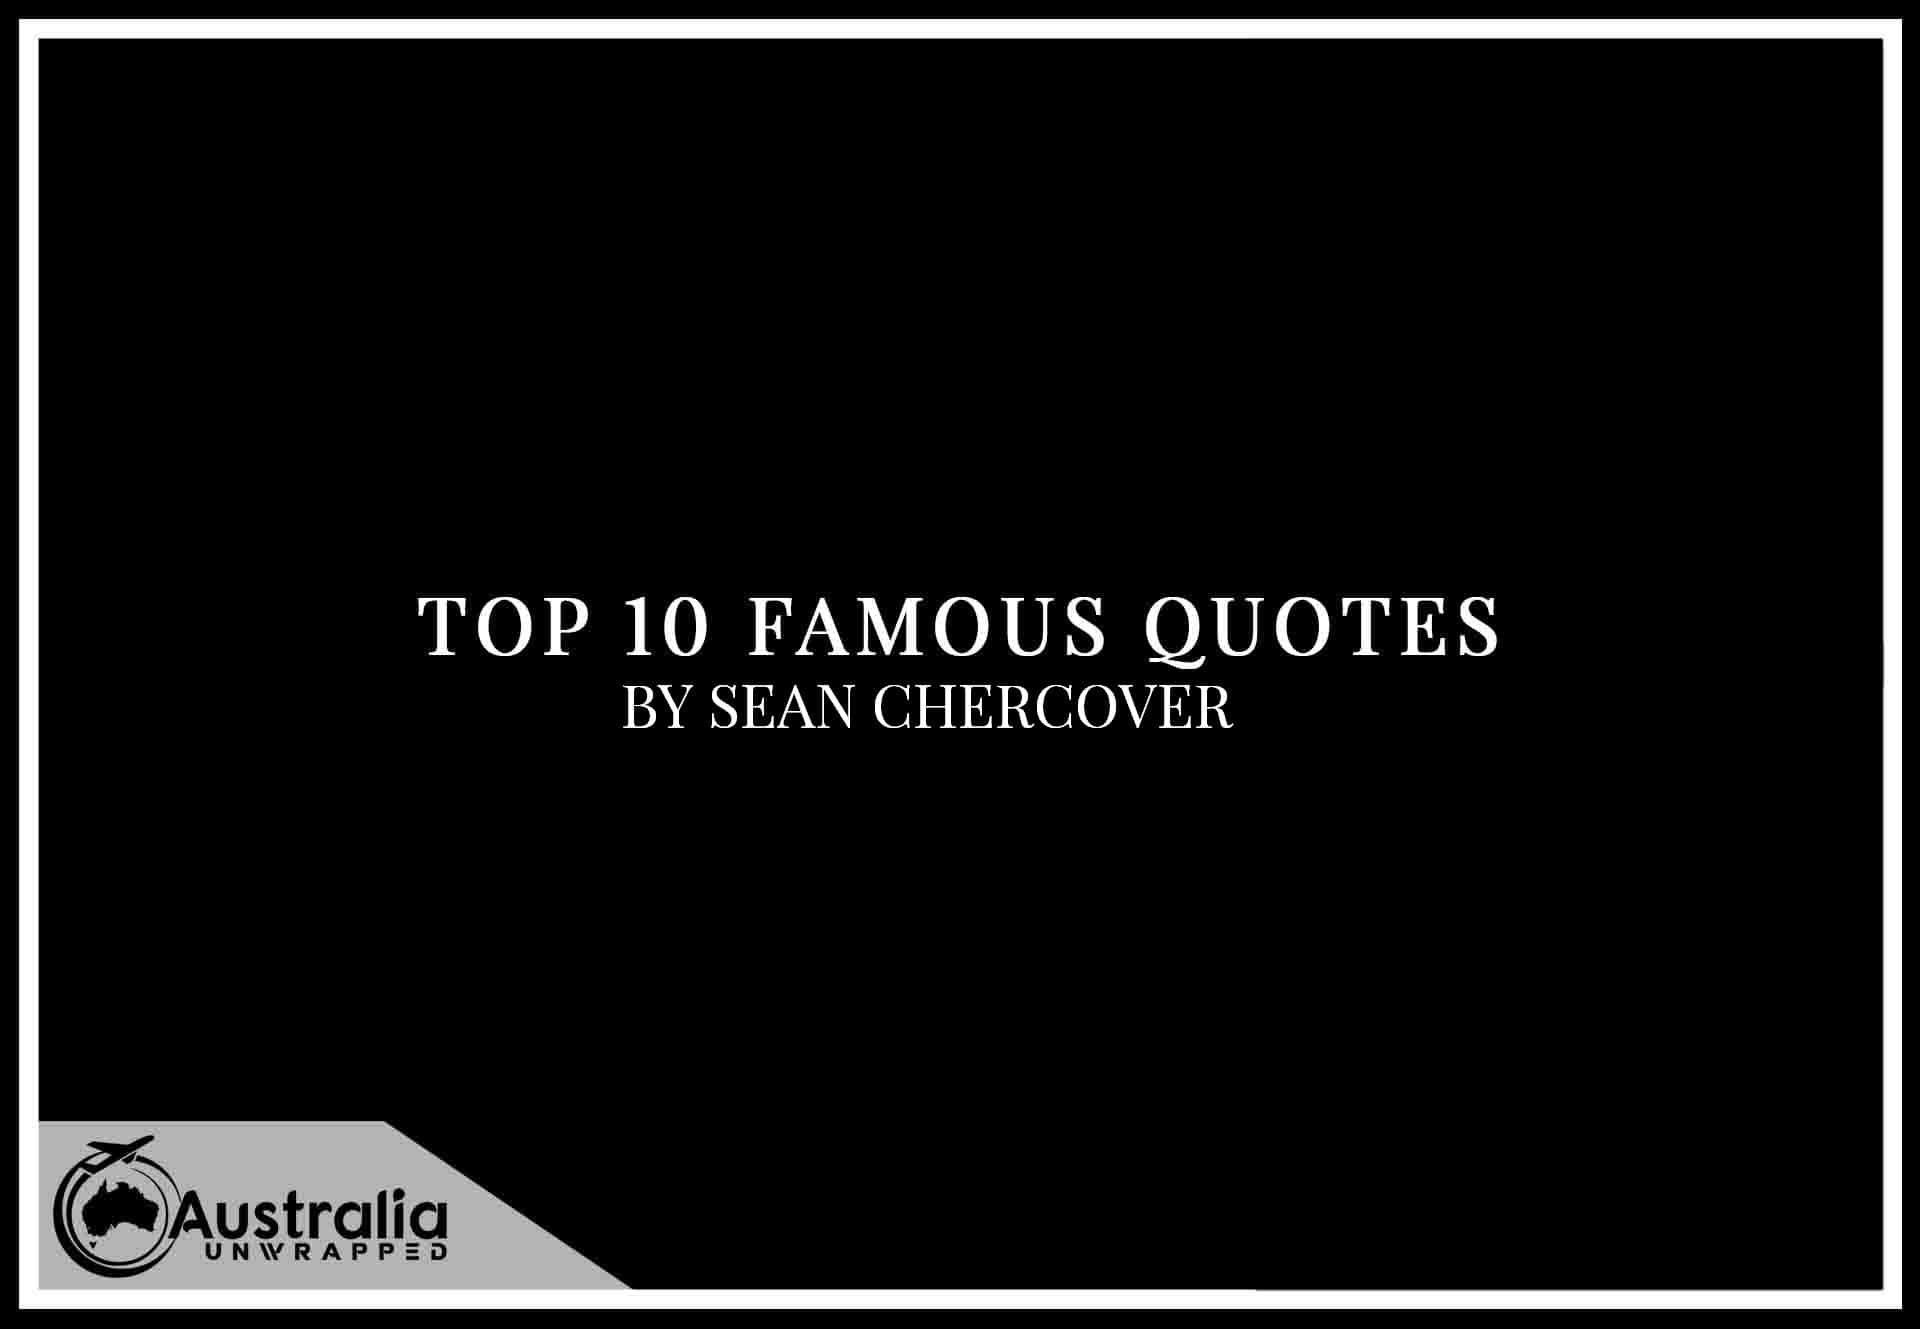 Top 10 Famous Quotes by Author Sean Chercover